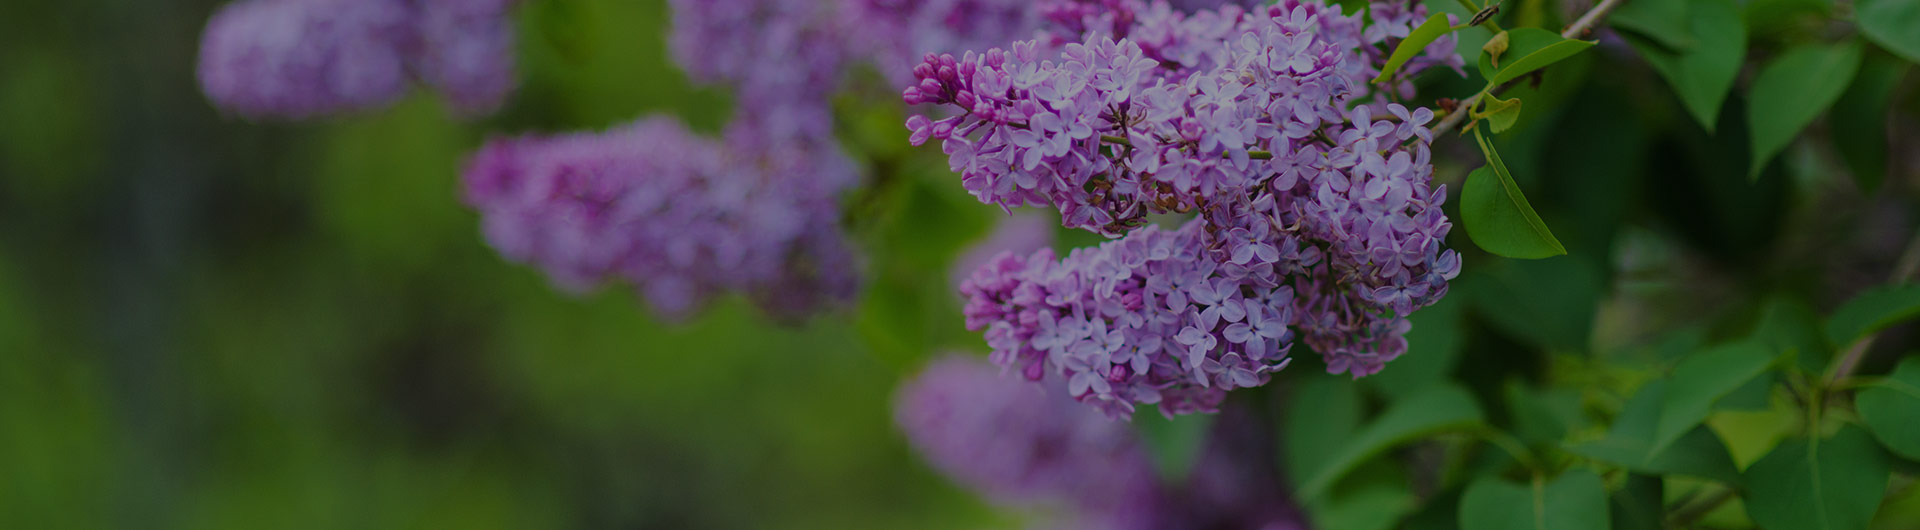 Purple lilac flowers, New Hampshire's state flower.